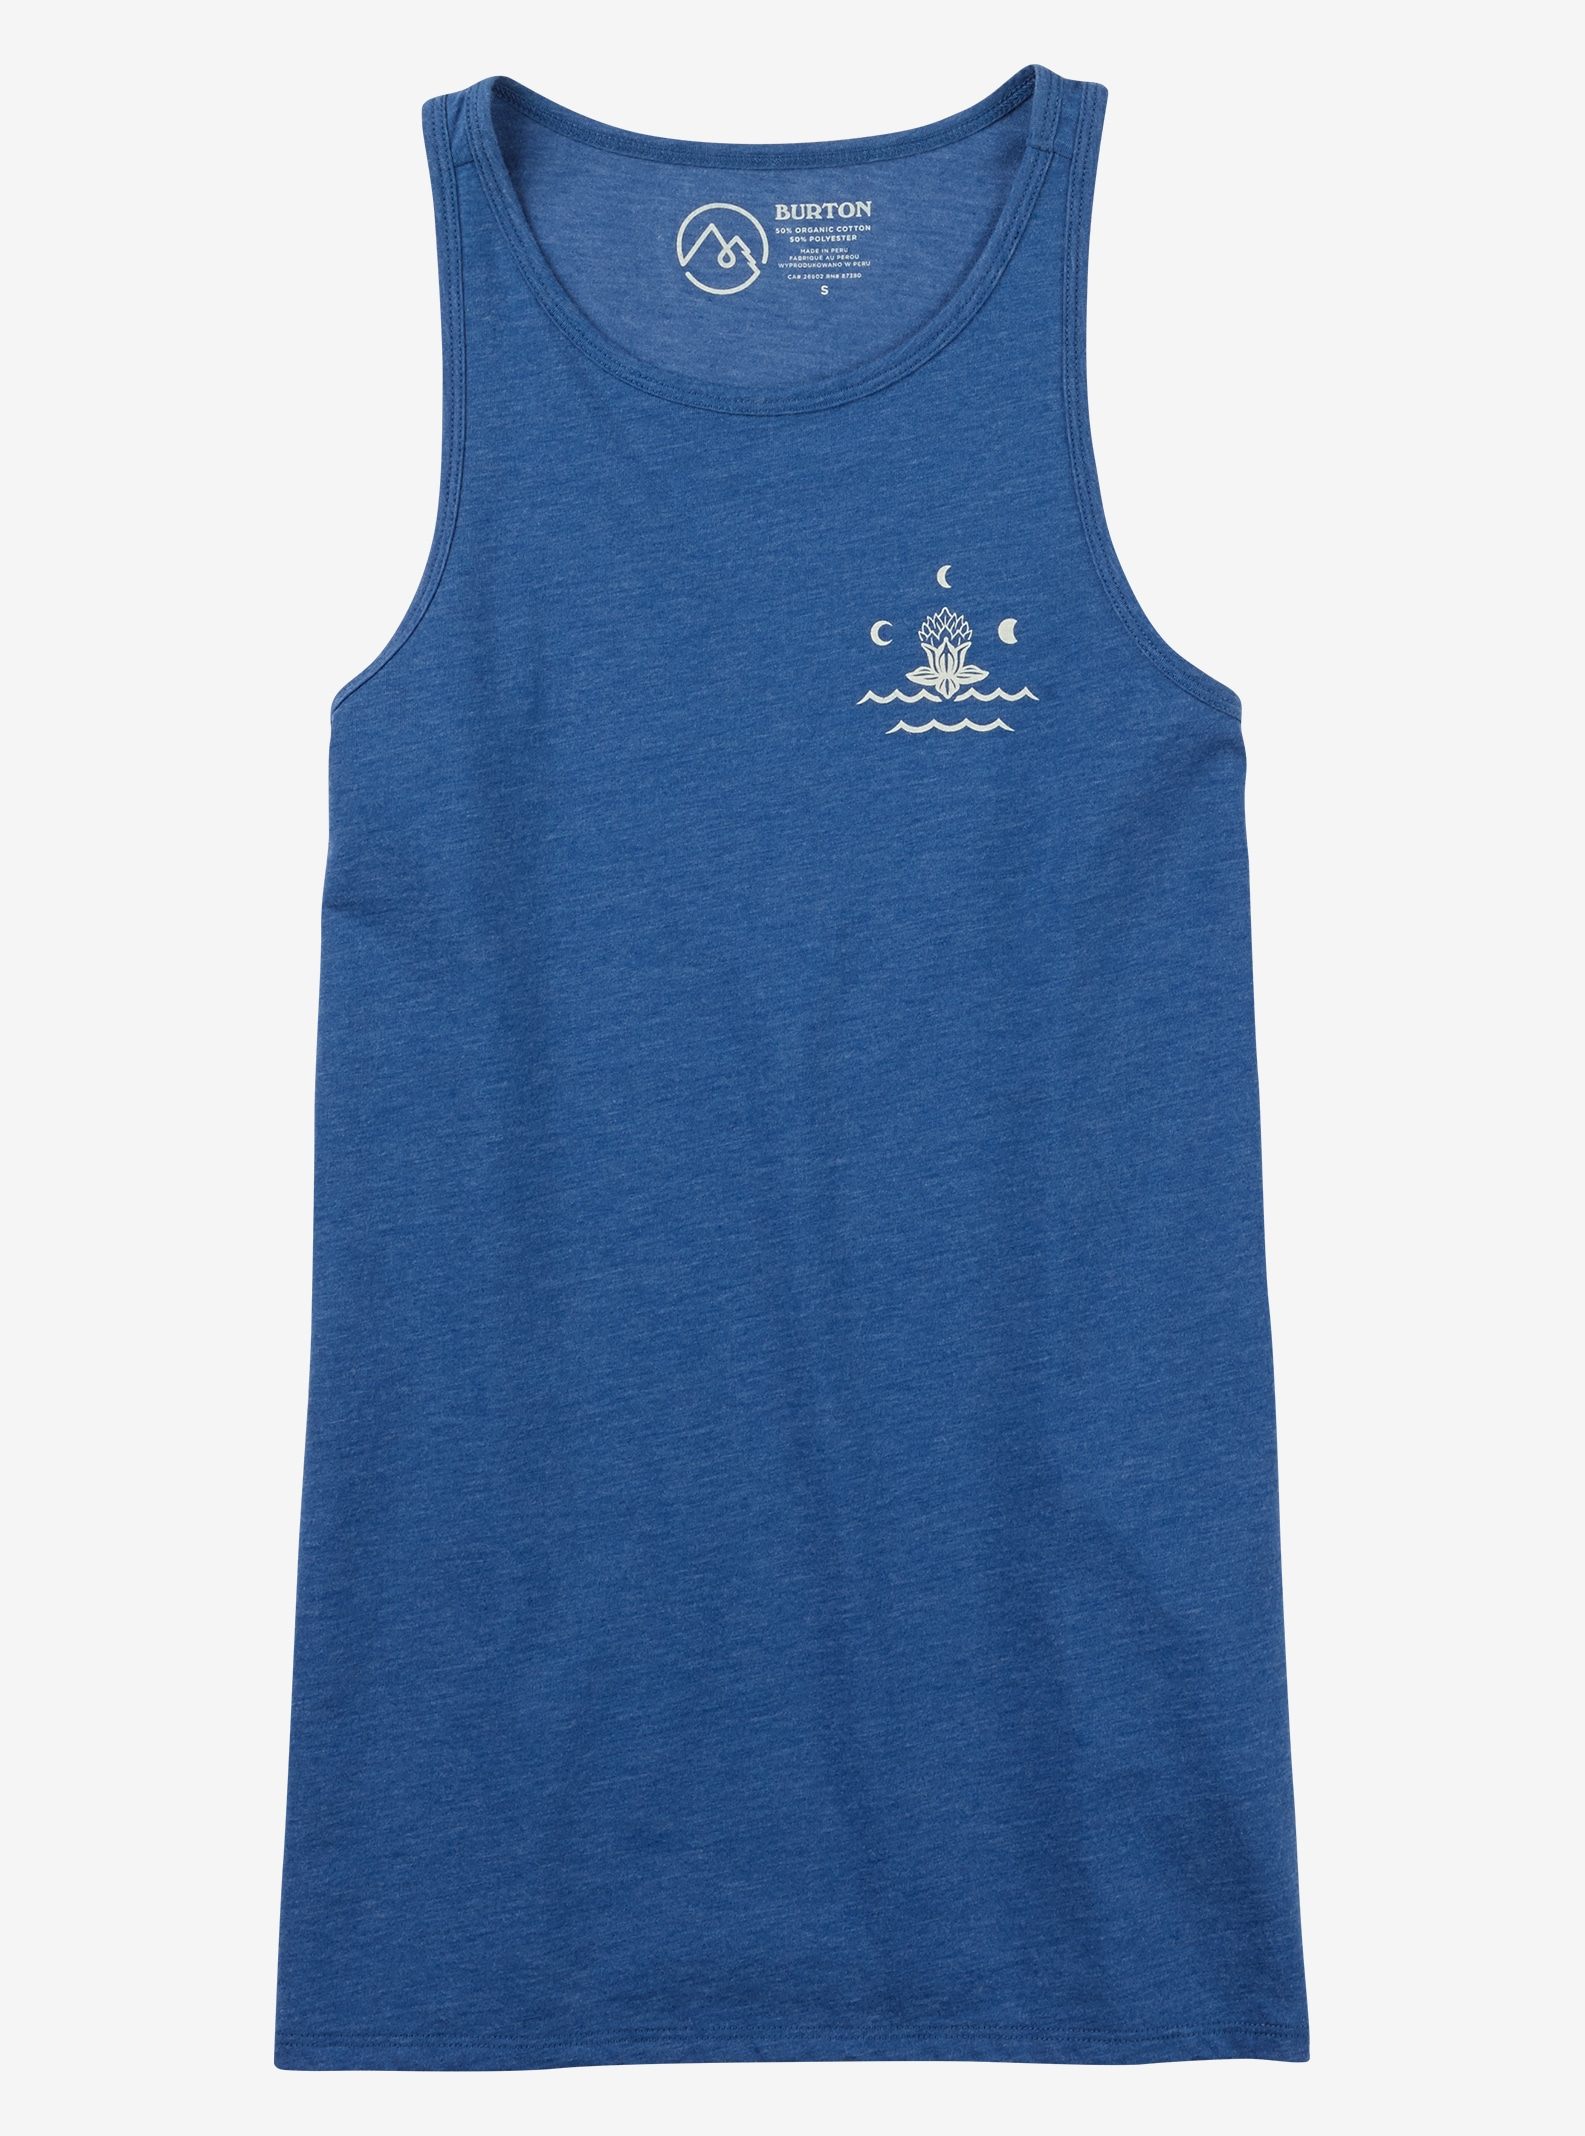 Burton Carta Tanktop angezeigt in True Blue Heather